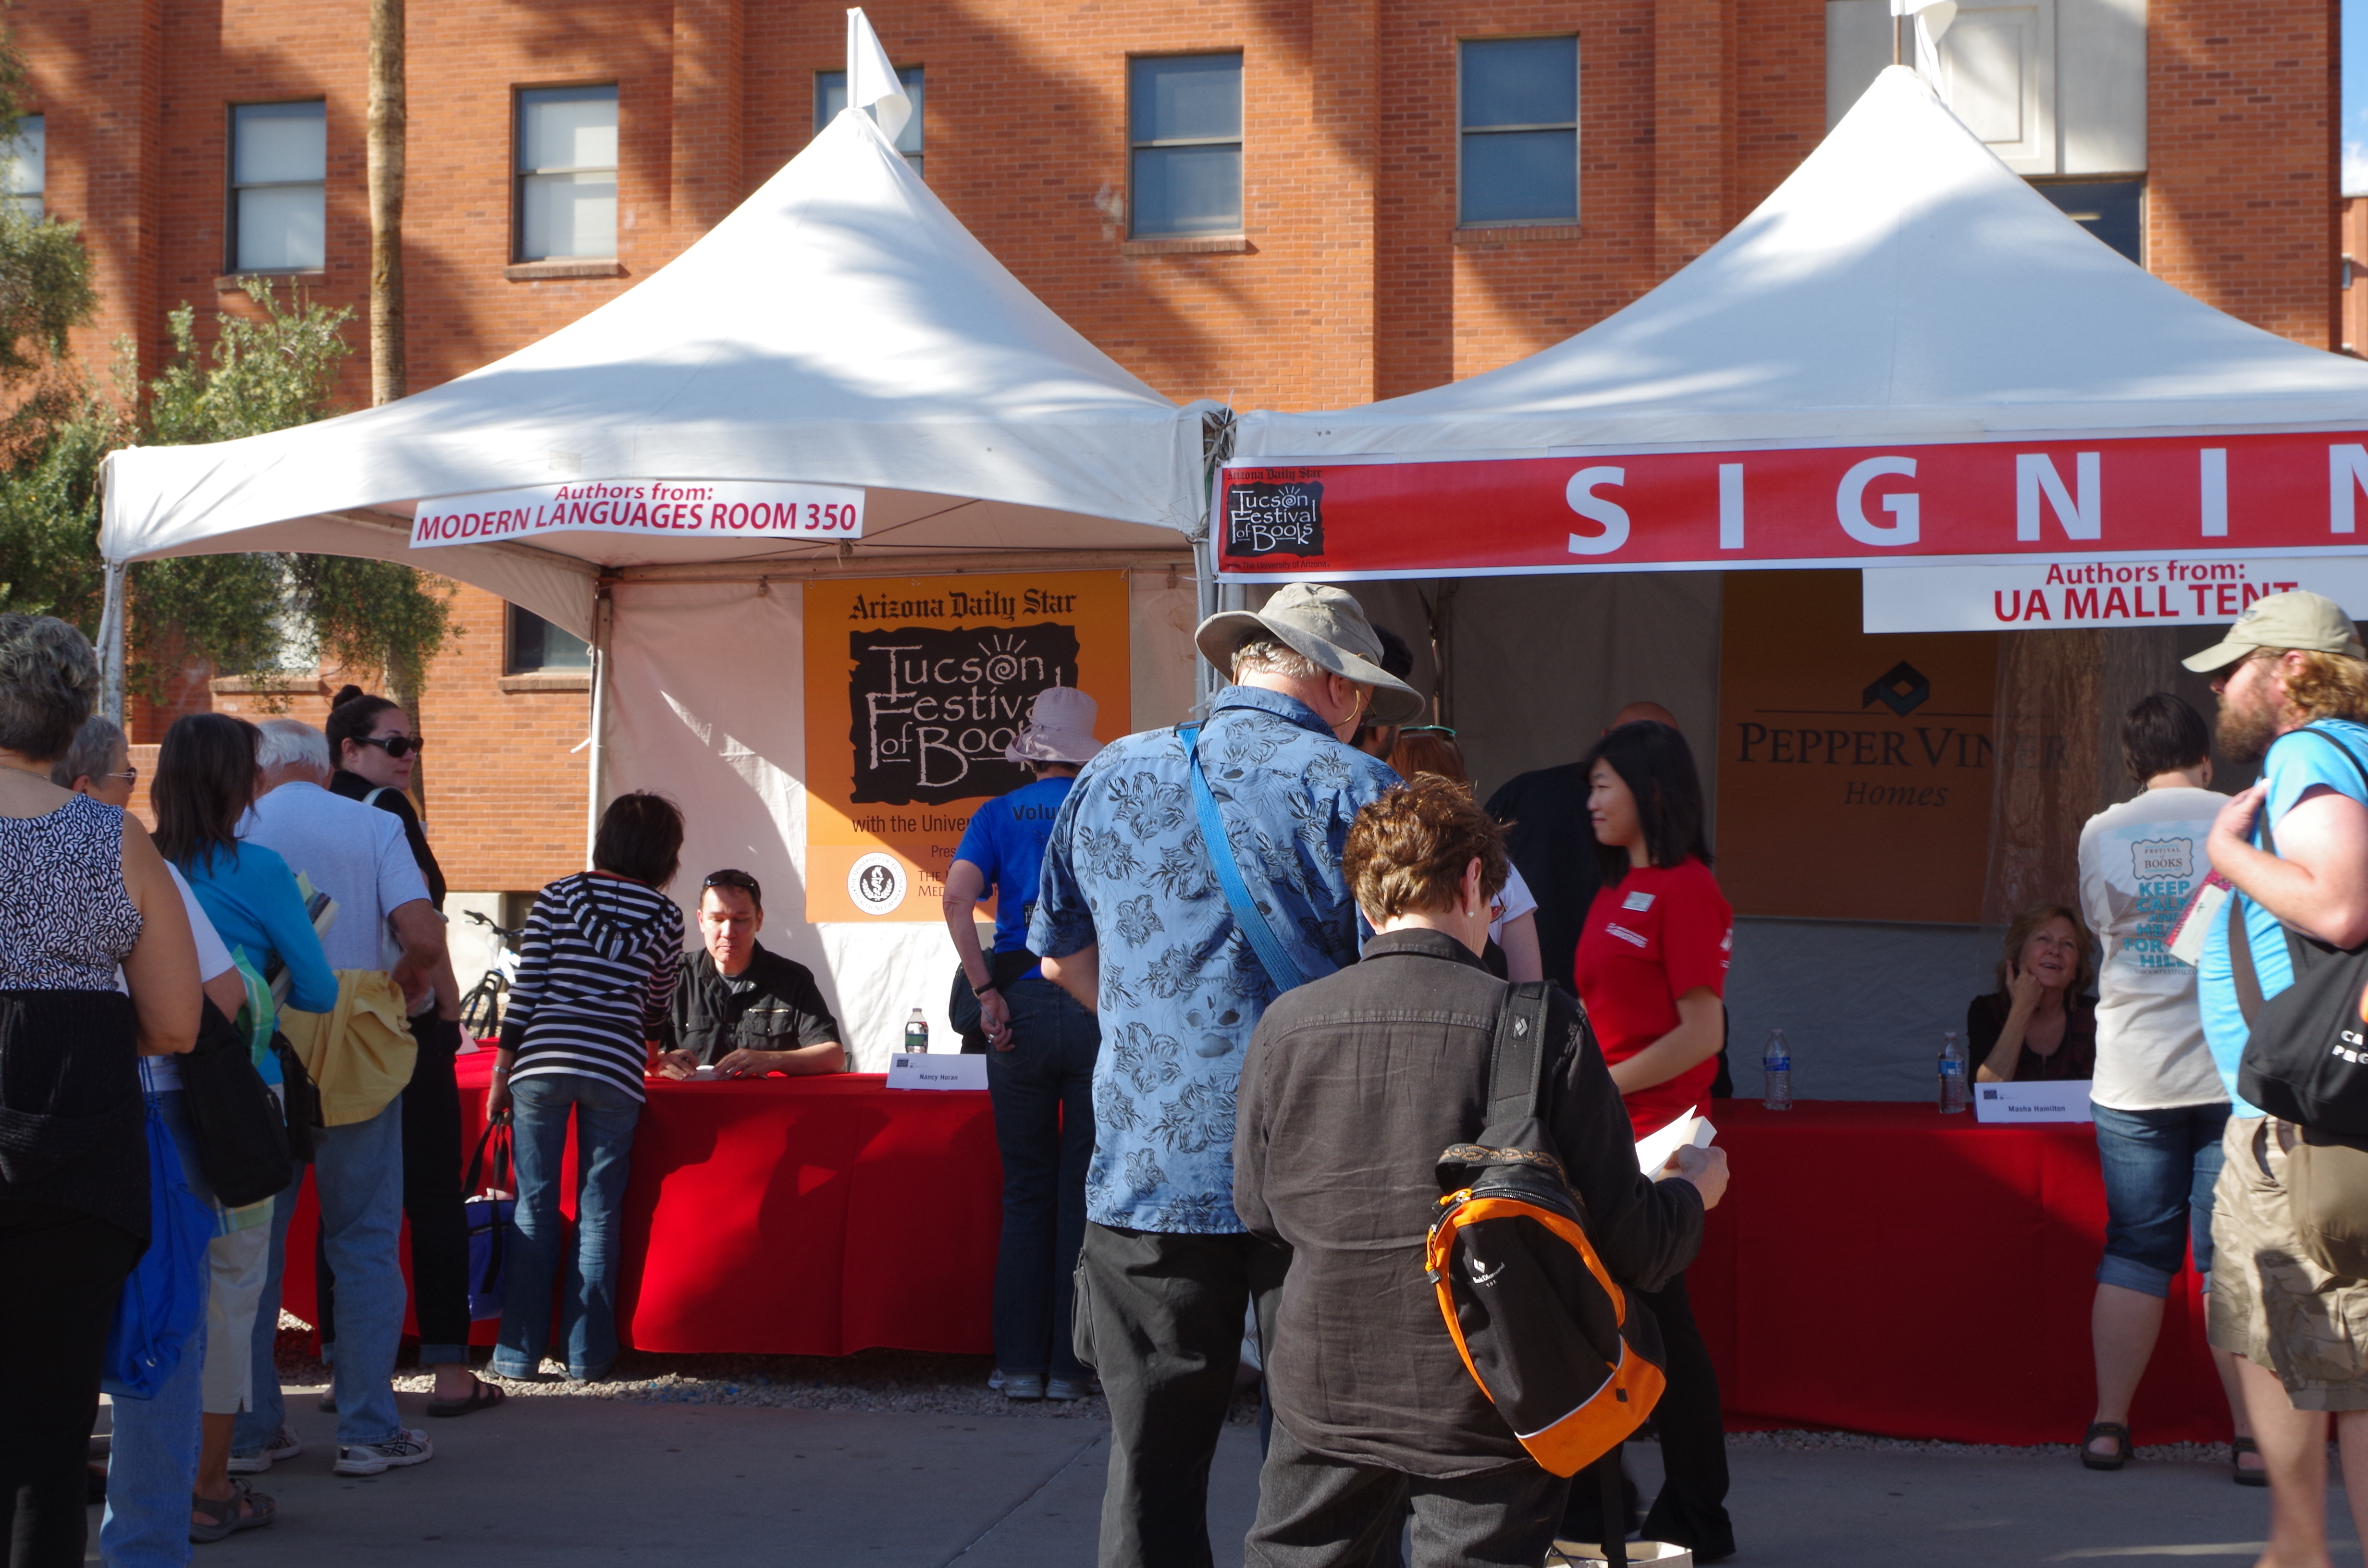 TFOB signing areas